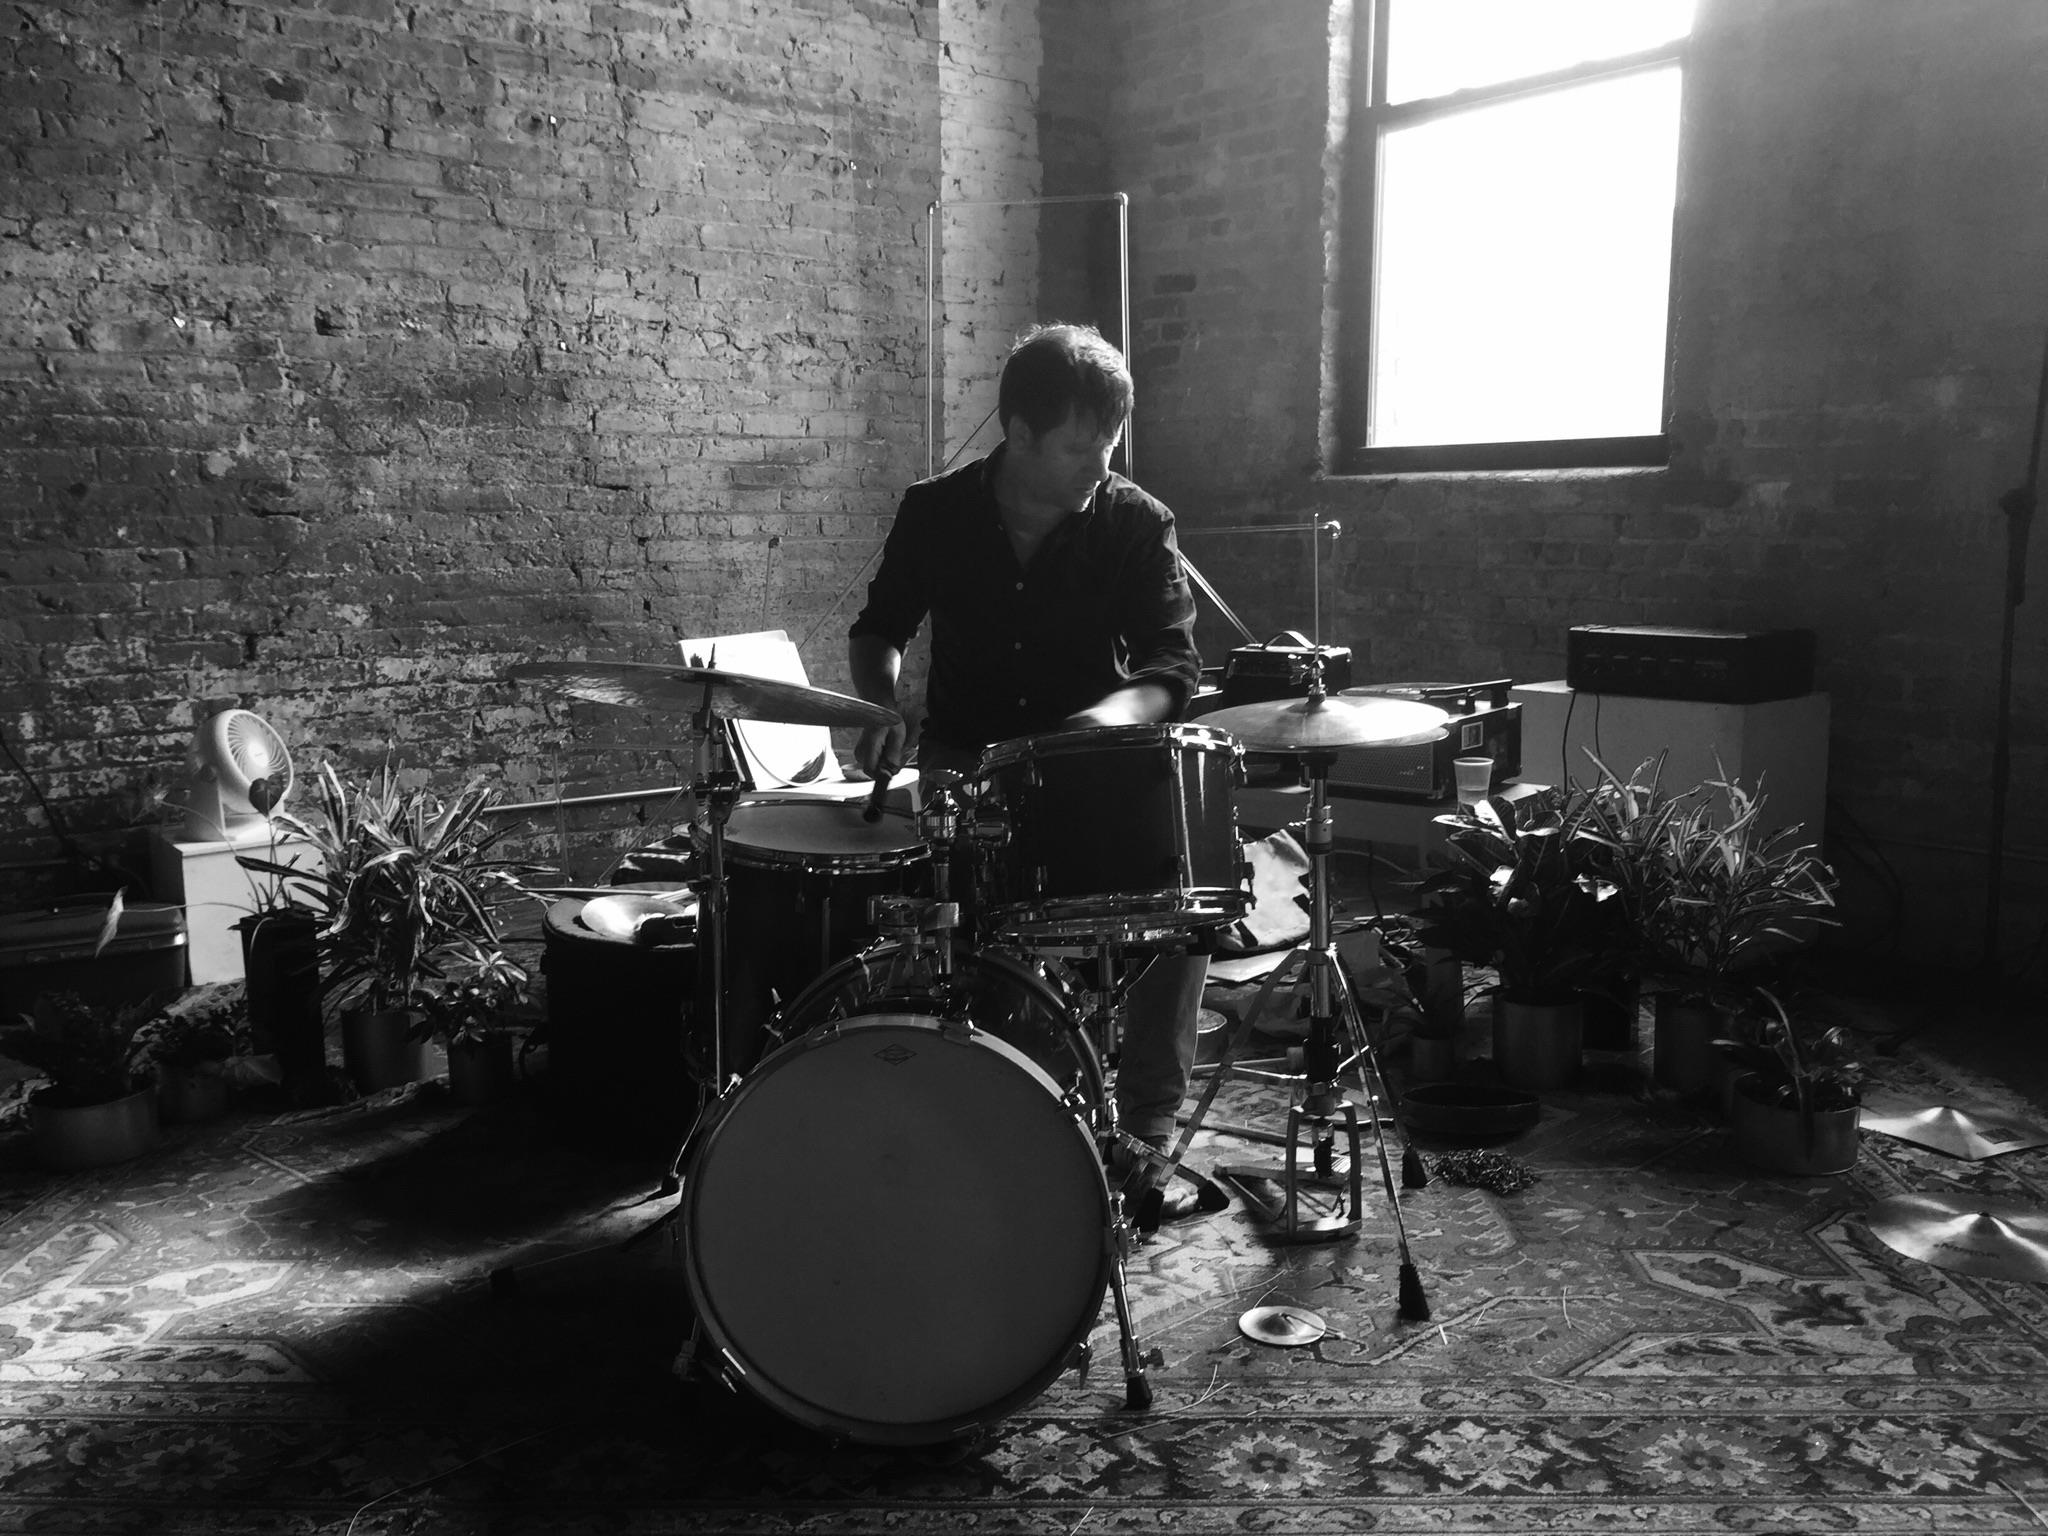 Tim Daisy playing the drums